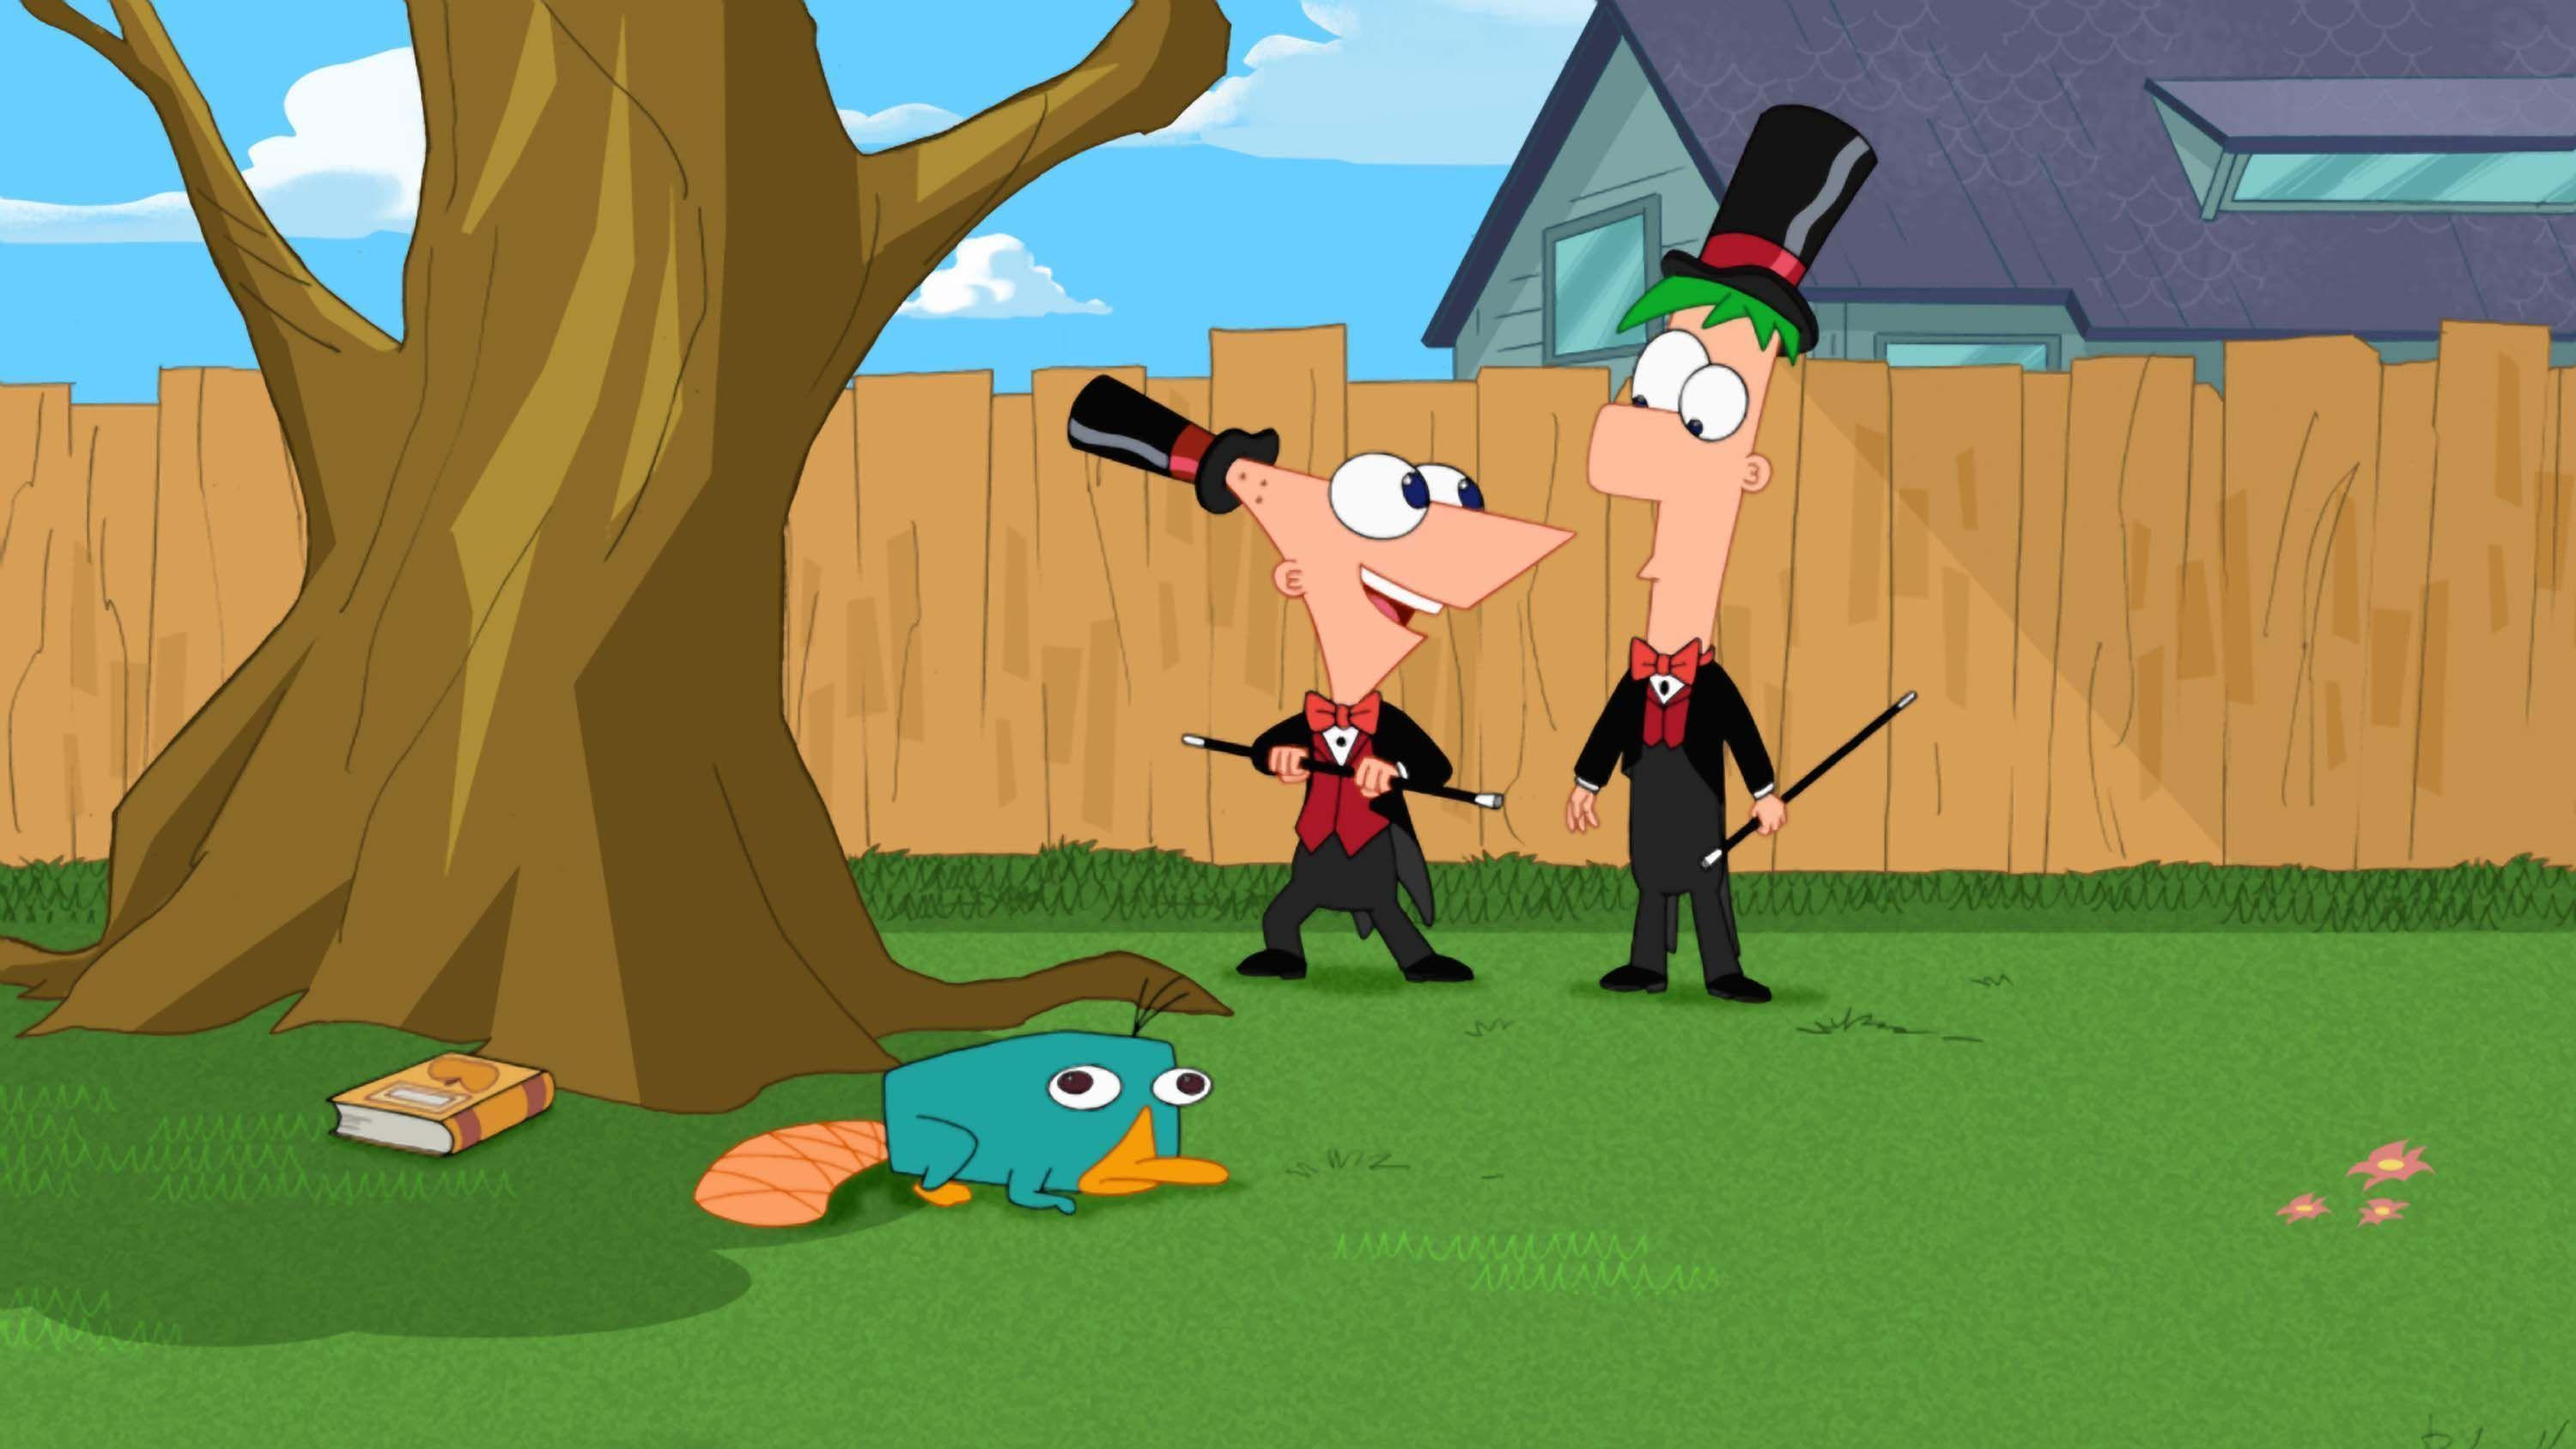 Phineas and ferb wallpaper iphone